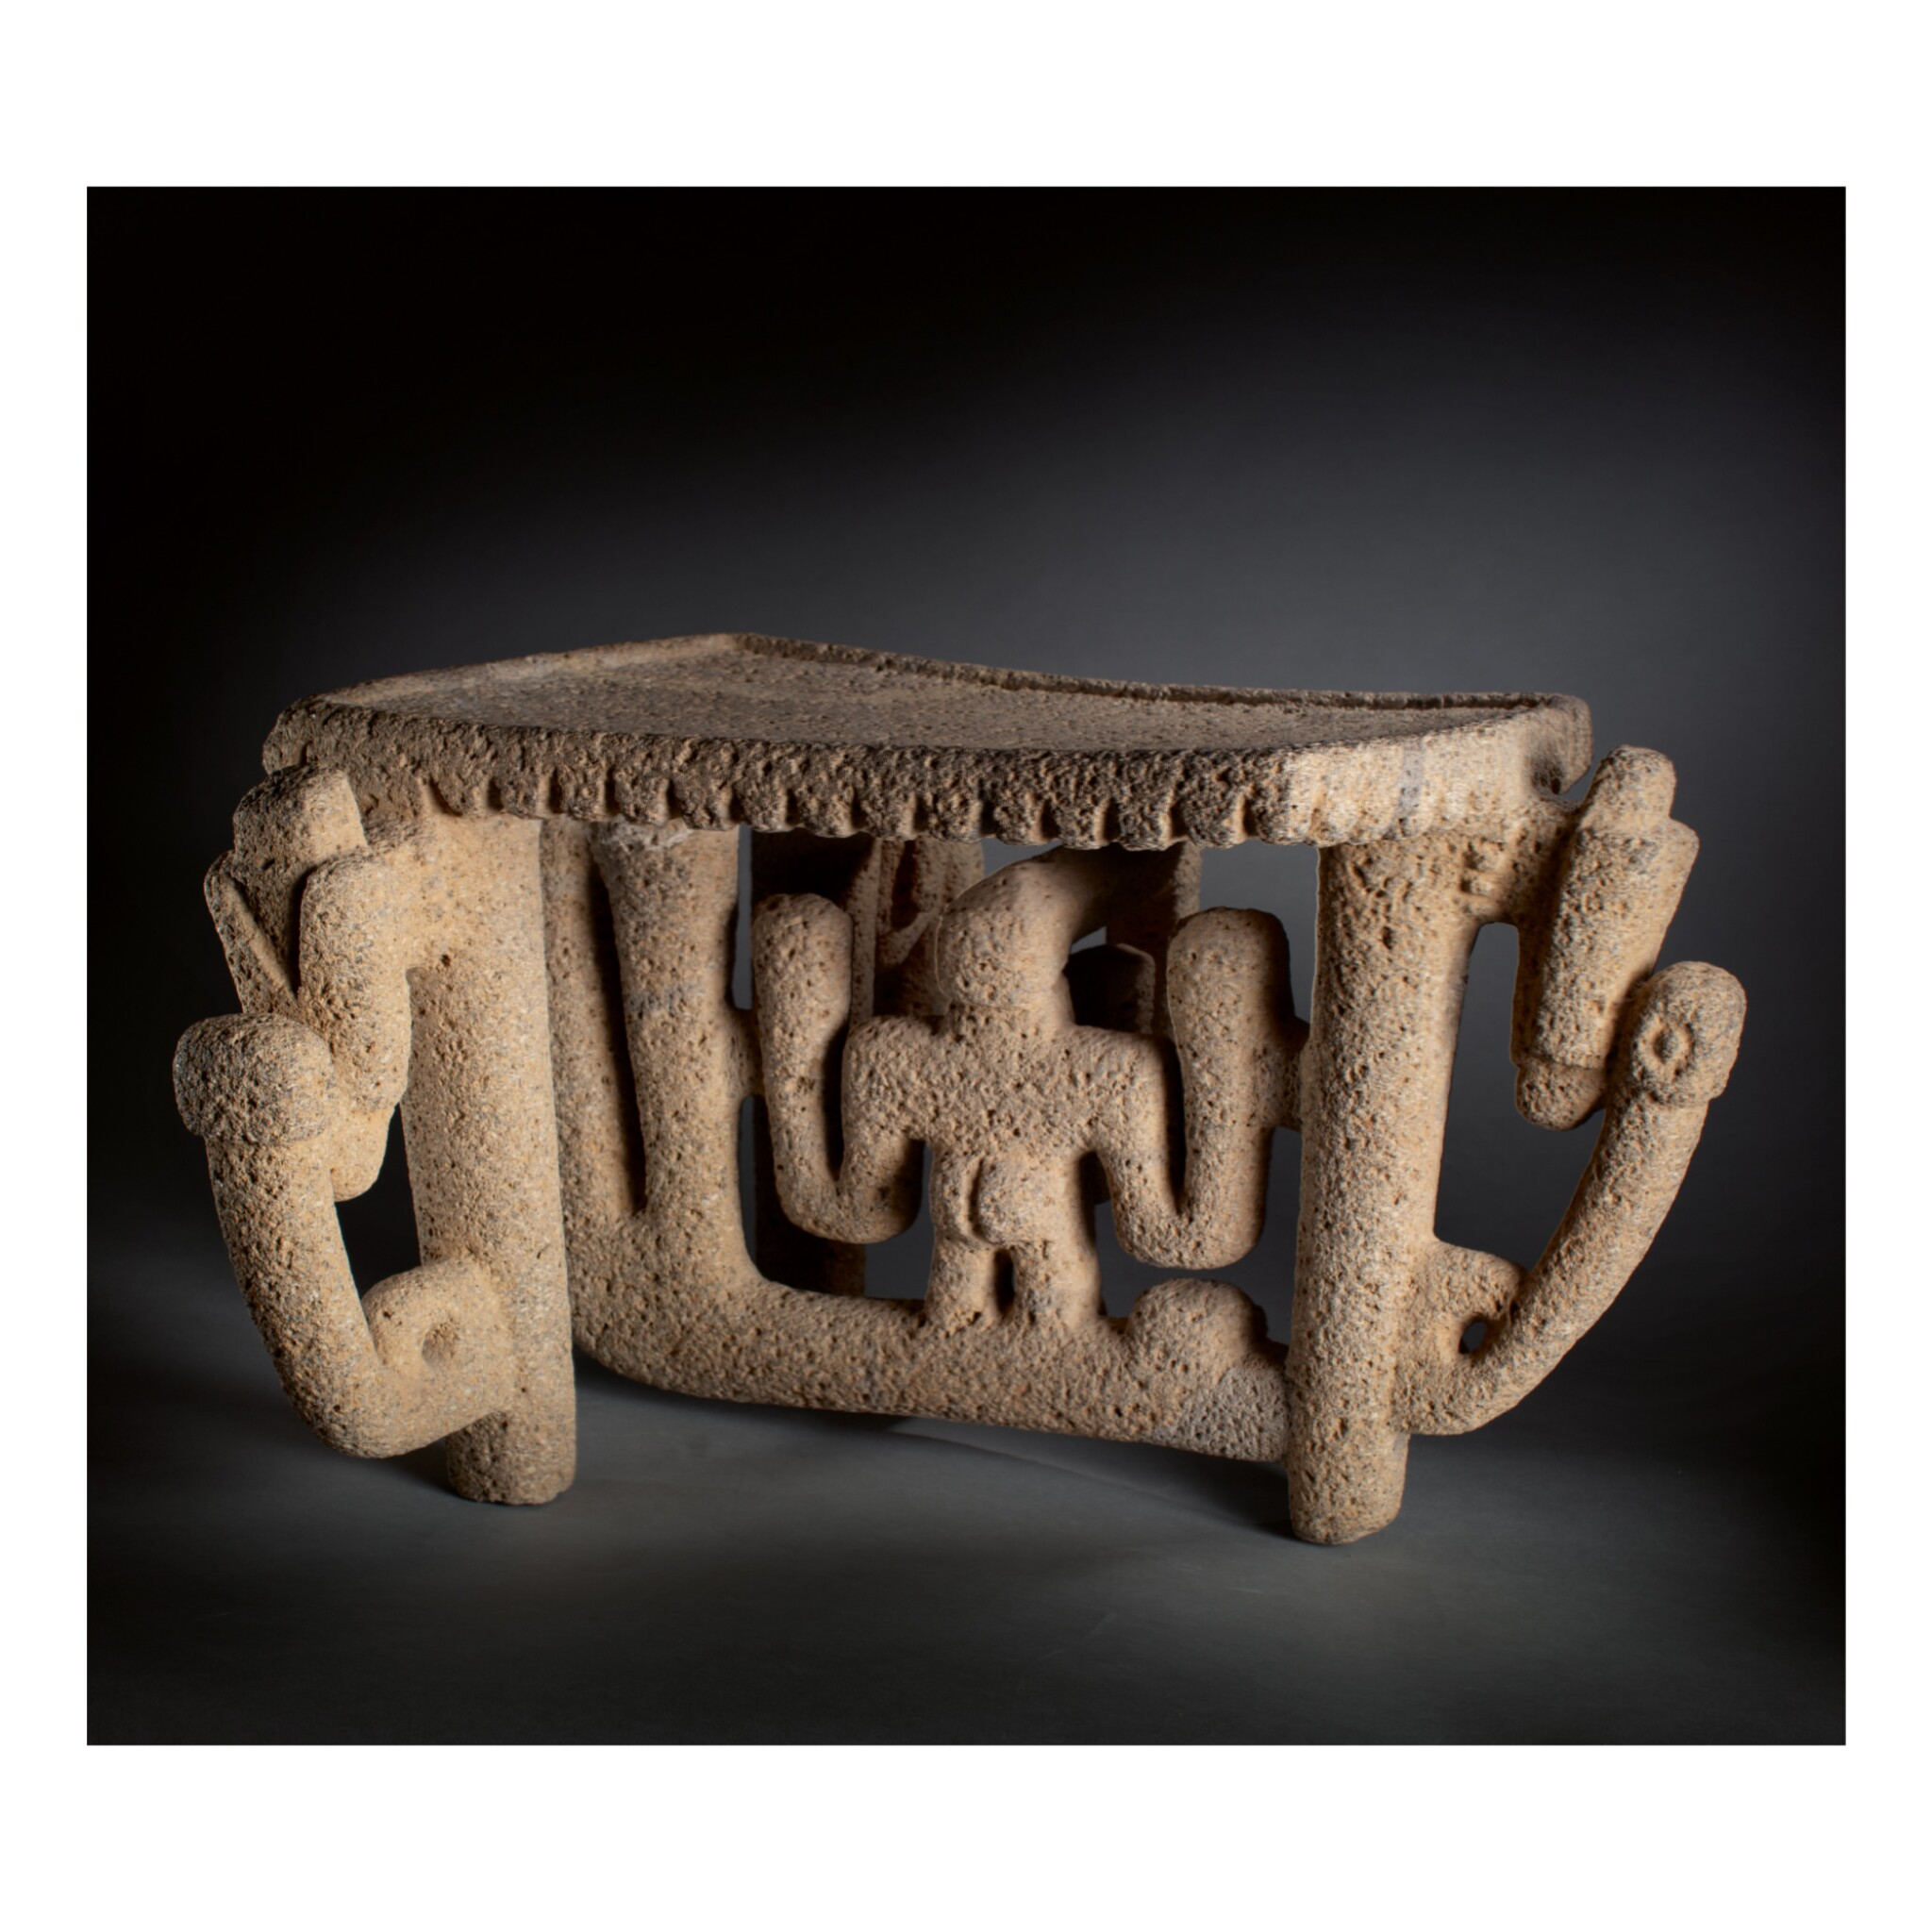 View full screen - View 1 of Lot 130. COSTA RICAN STONE FLYING PANEL METATE LATE PERIOD IV, AD 1 - 500.